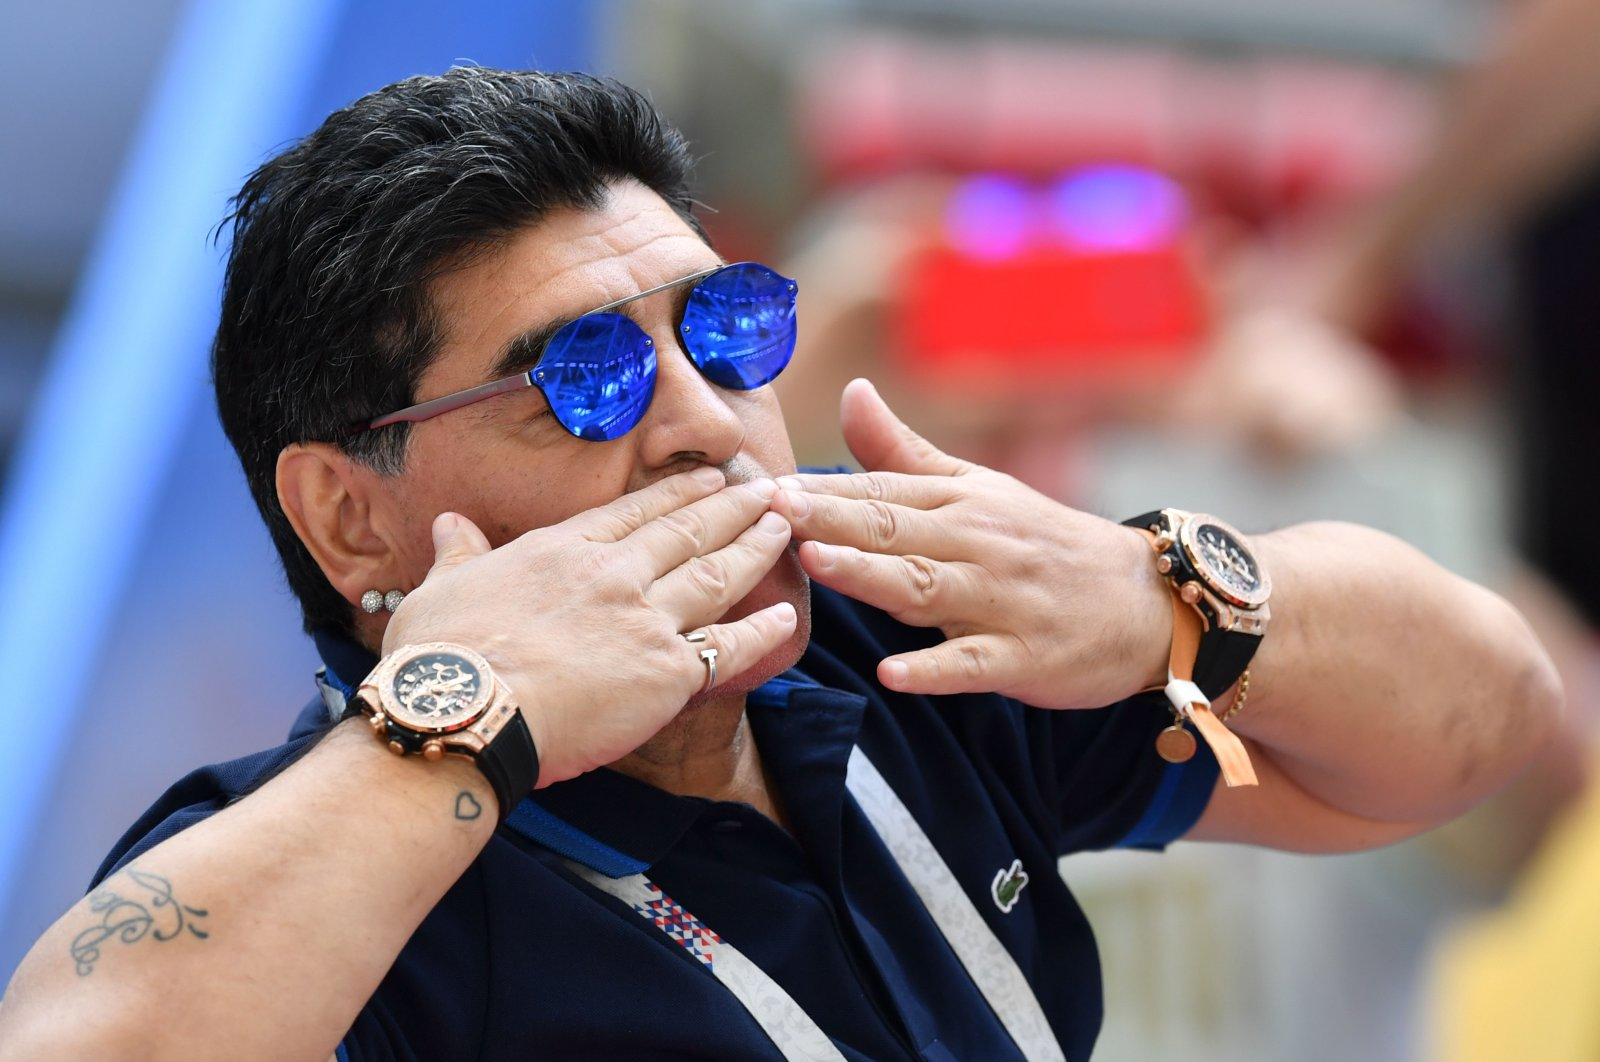 Diego Maradona gestures during a 2018 World Cup match between France and Argentina at the Kazan Arena stadium, in Kazan, Russia, June 30, 2018. (AFP Photo)